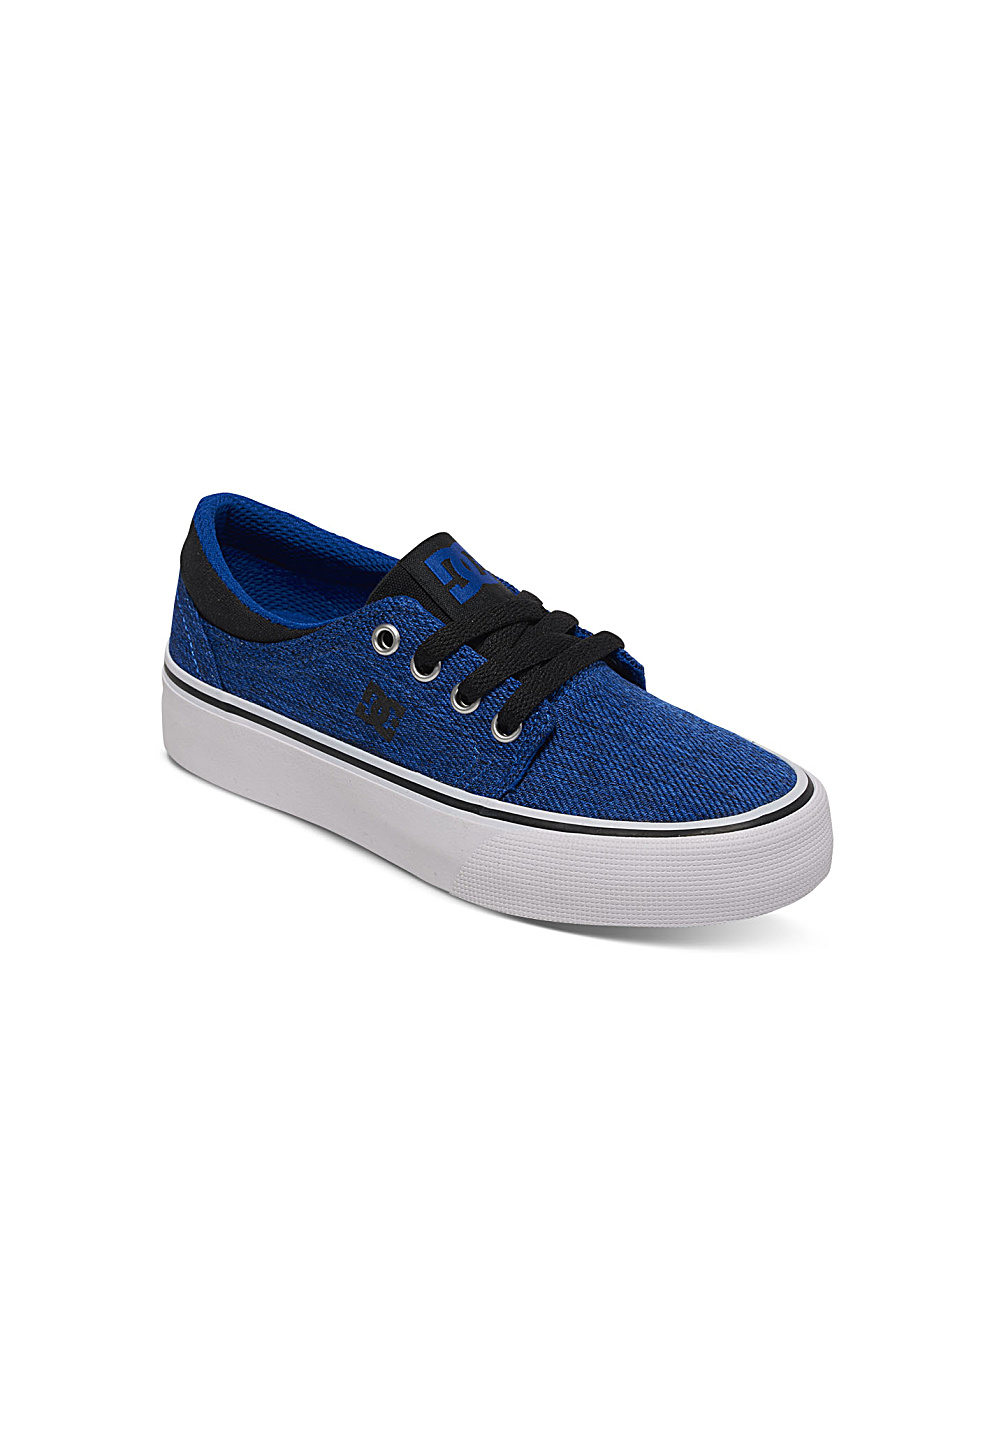 DC Trase TX SE Sneakers for Kids Boys Blue